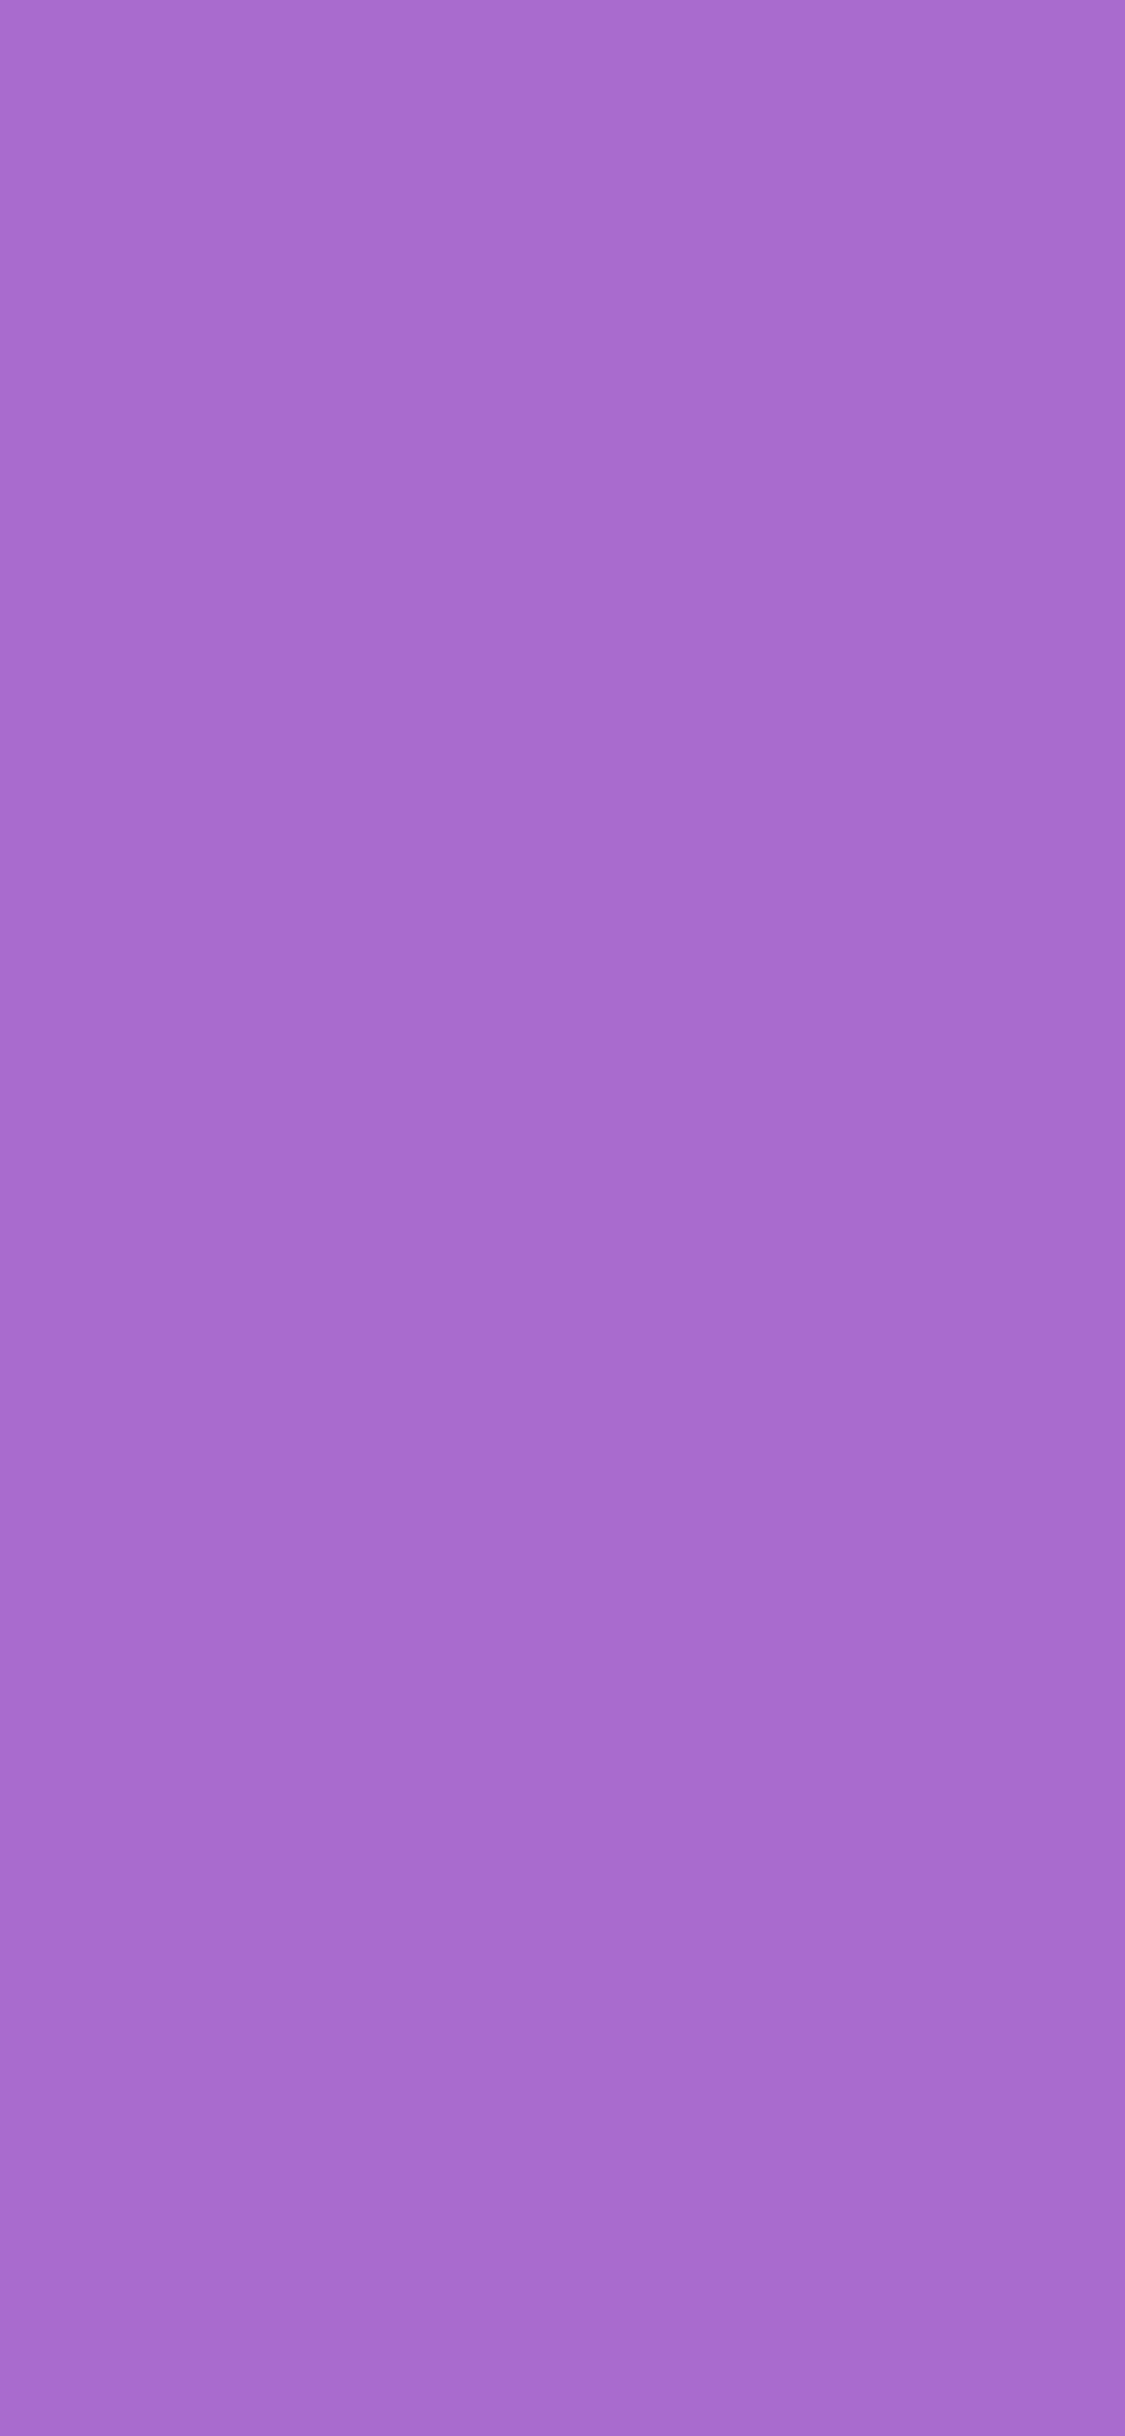 1125x2436 Rich Lavender Solid Color Background